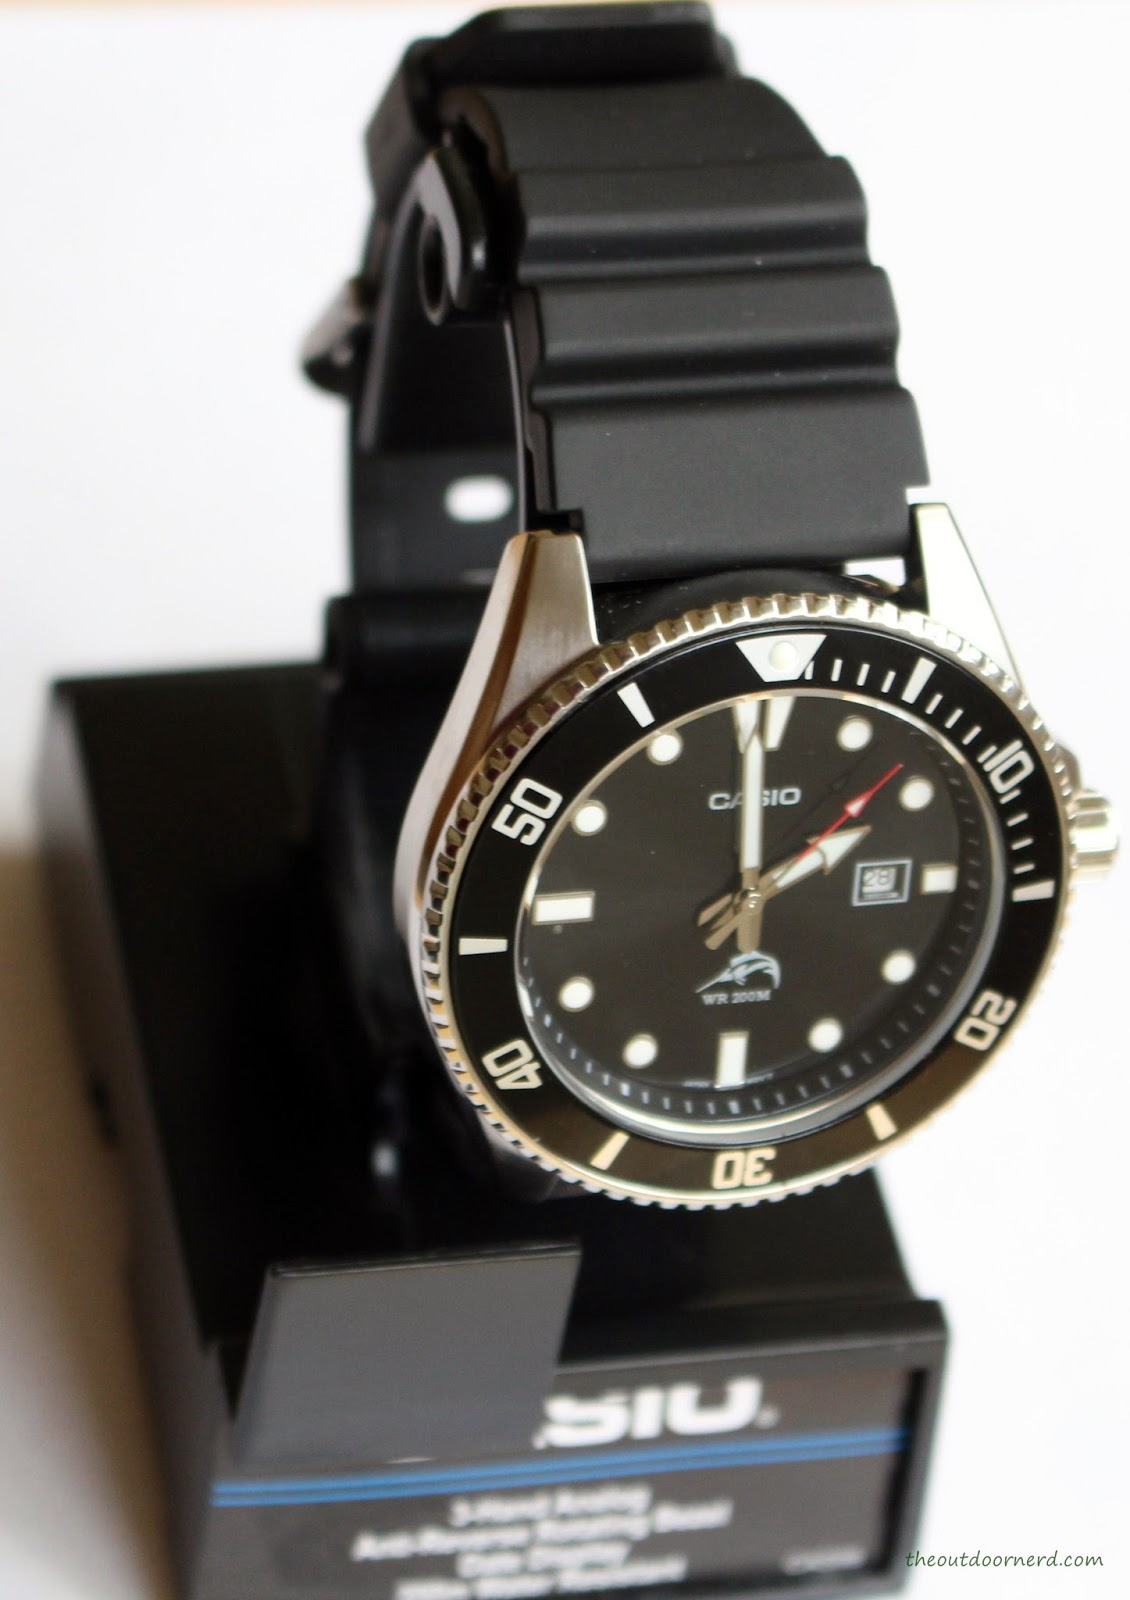 Casio MDV106-1A Diver's Watch: On Stand Top View